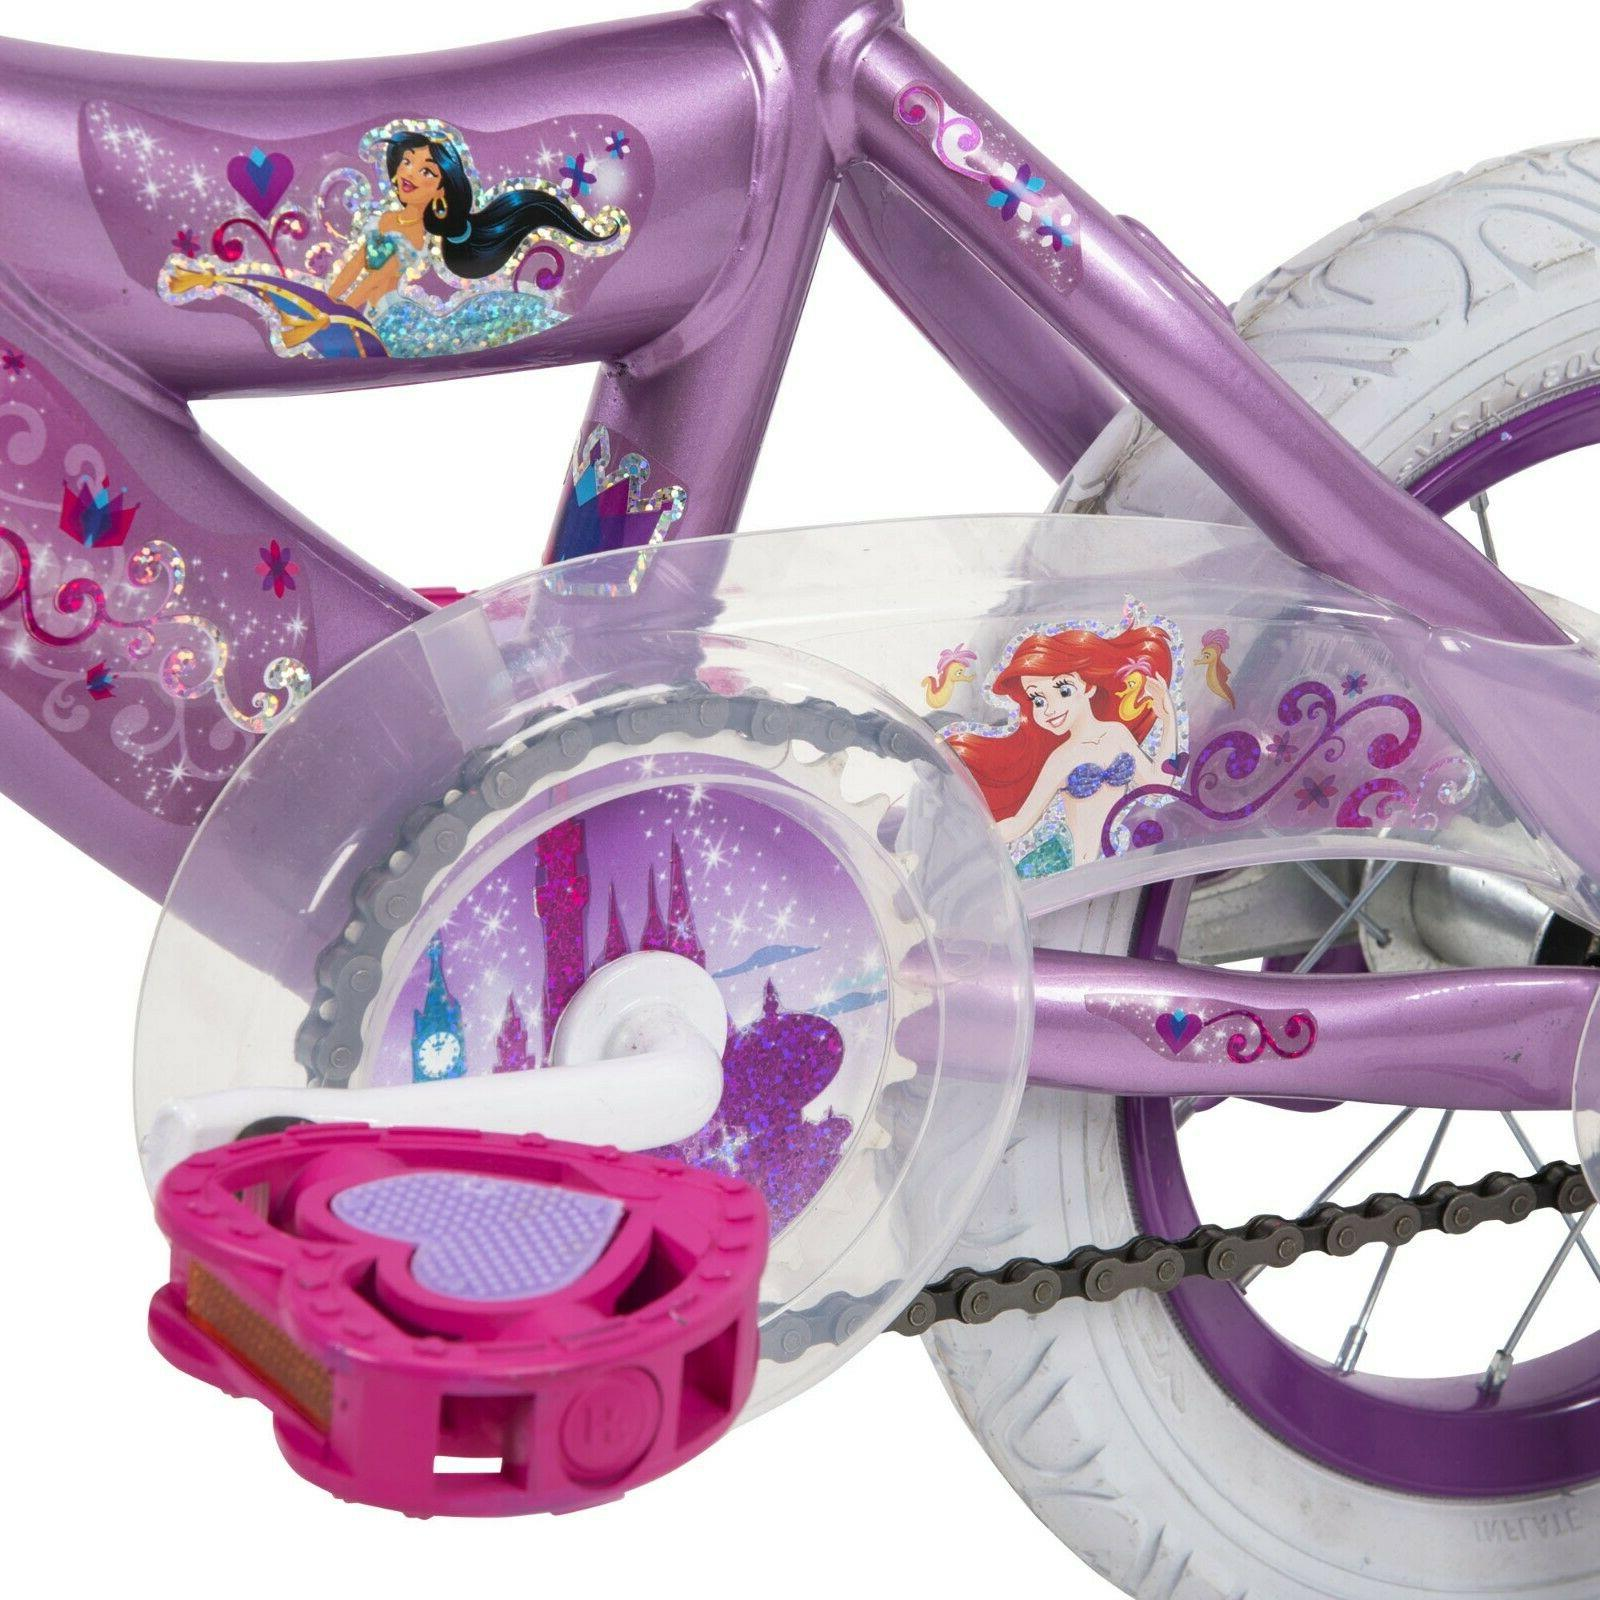 Huffy Kid's Bike 12 inch, with Carriage